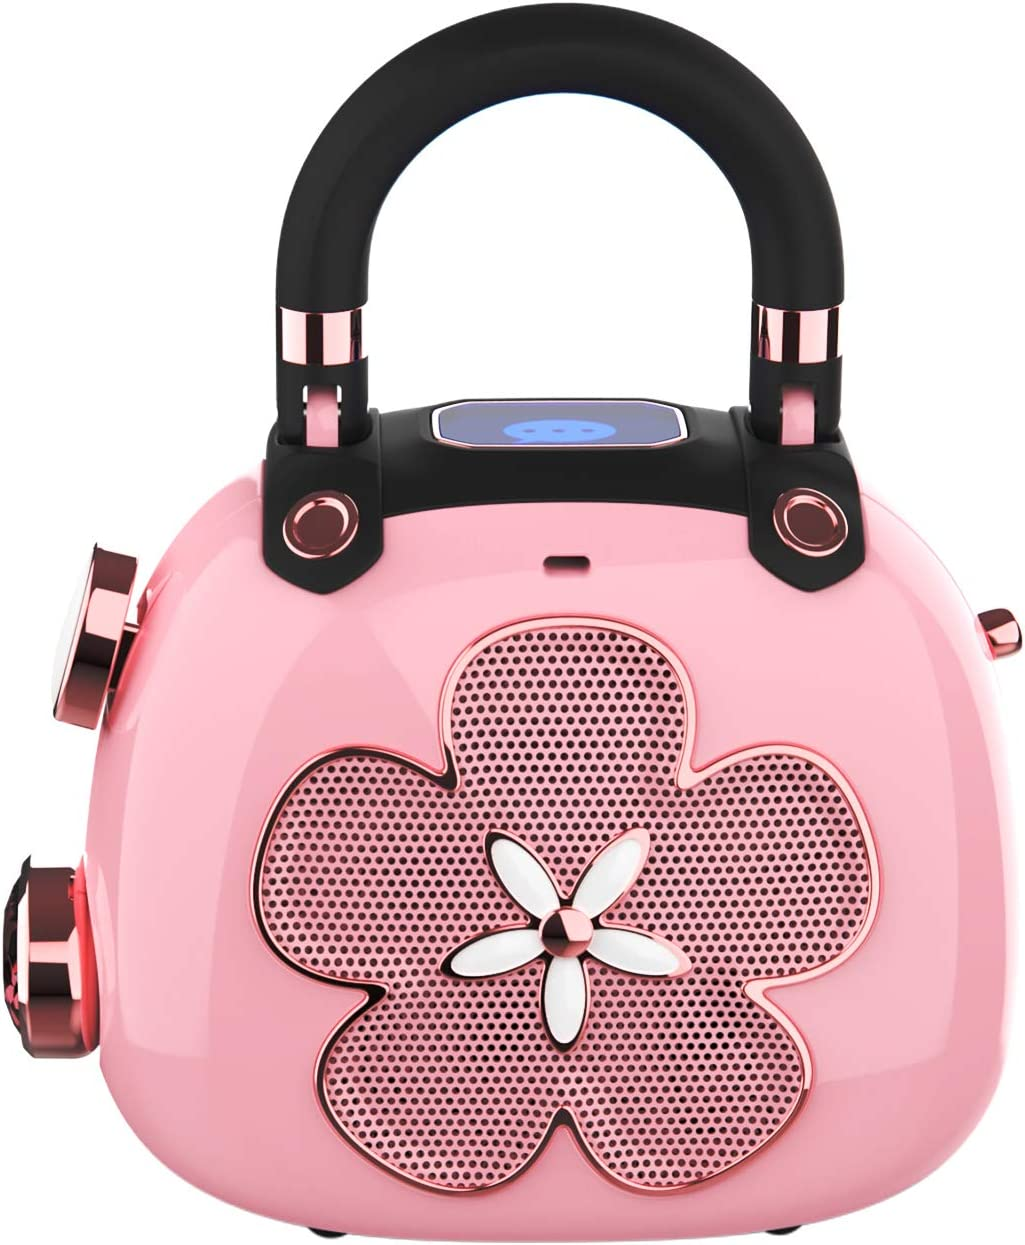 DOSS Candy Mini Portable Bluetooth Speaker with Clean Sound, Built-in Mic, Ultra-Portable Design, Wireless Speaker Compatible for Home, Outdoors, Travel, Gift Ideas-Pink